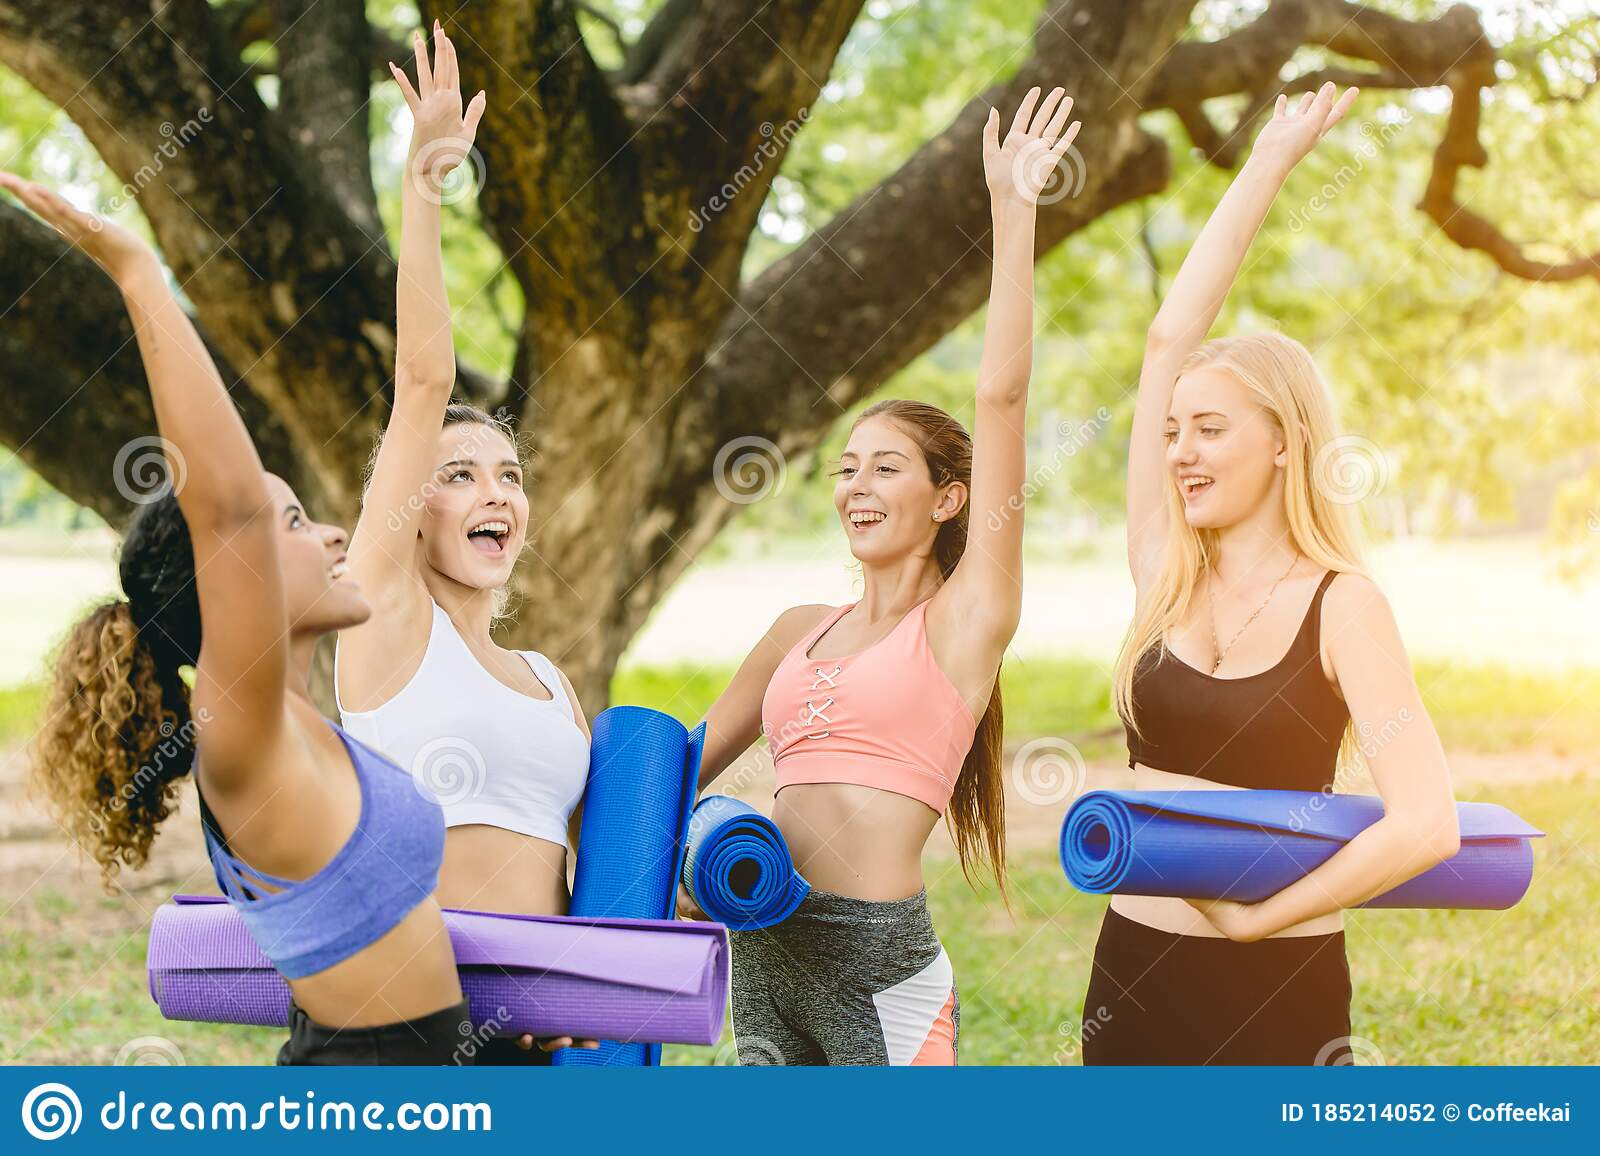 Outdoor Yoga Class, Group Of Young Healthy Women Teen